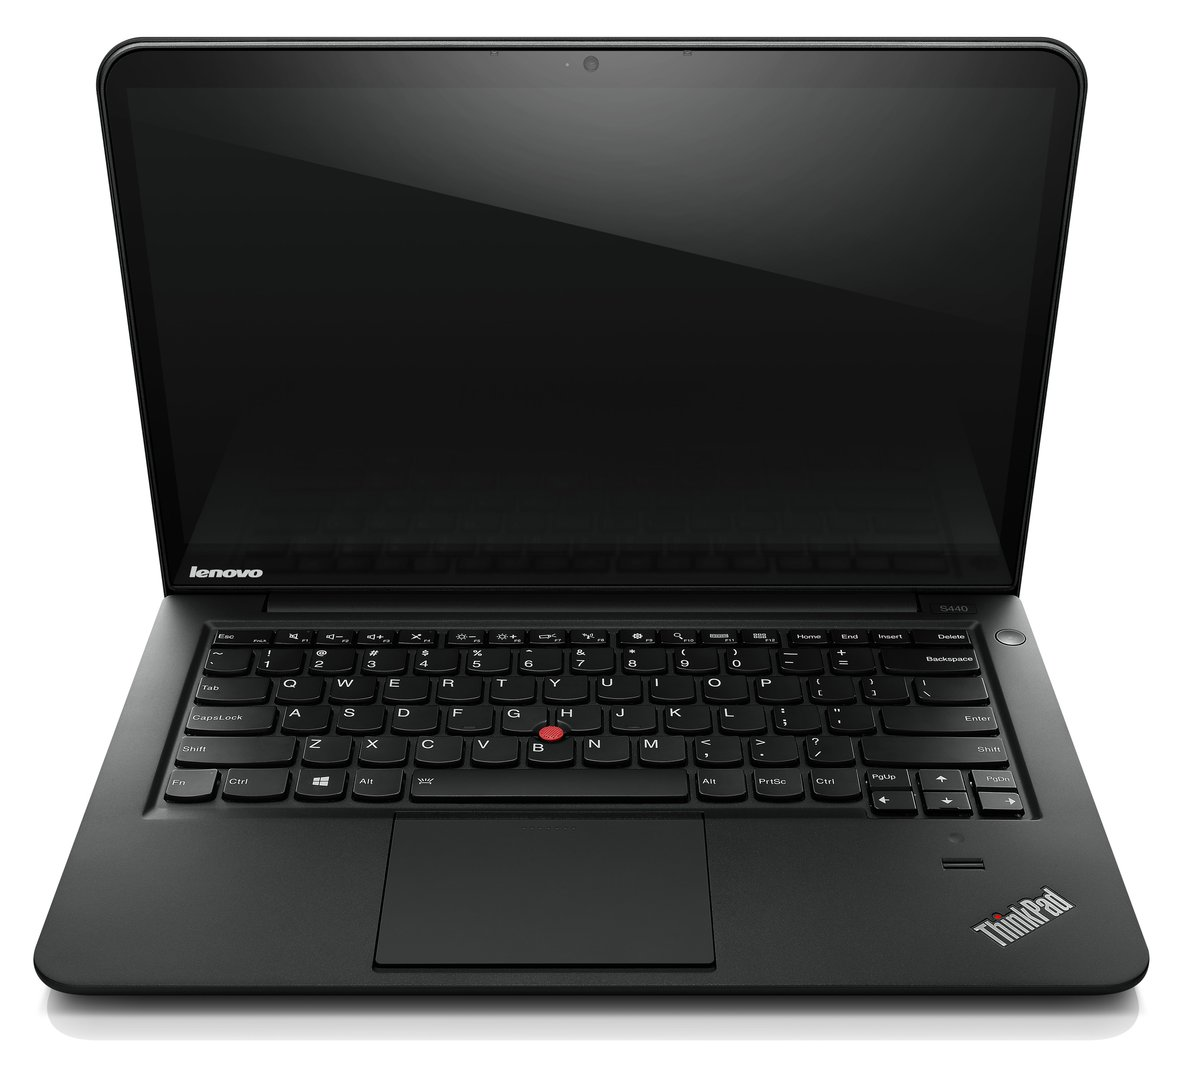 Lenovo ThinkPad S440 Touch